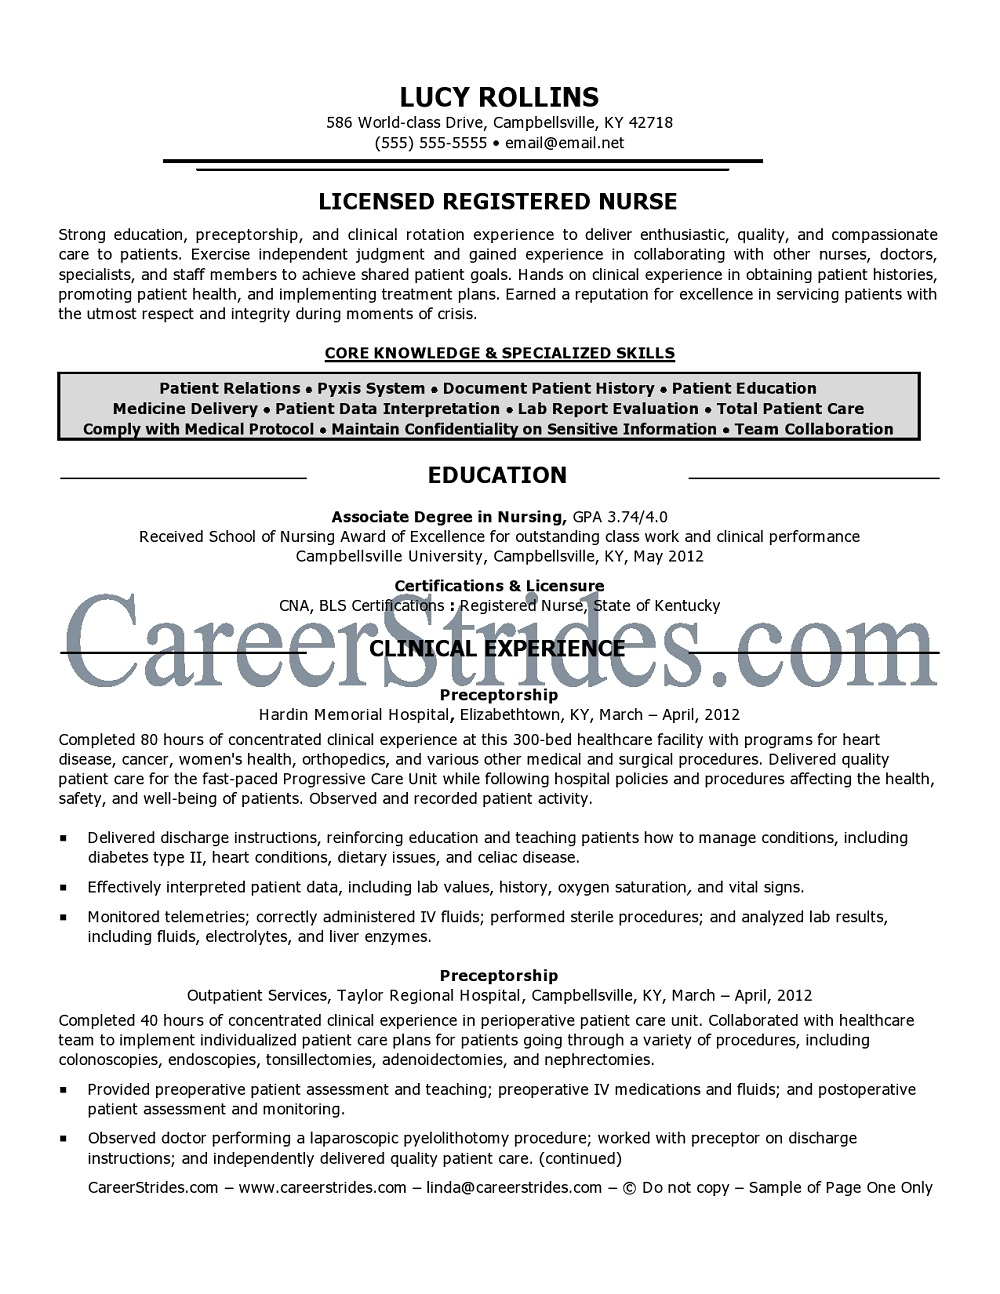 resume sample resume sle nursing resume pdf home gt resume nursing resume objectives examples nursing resume